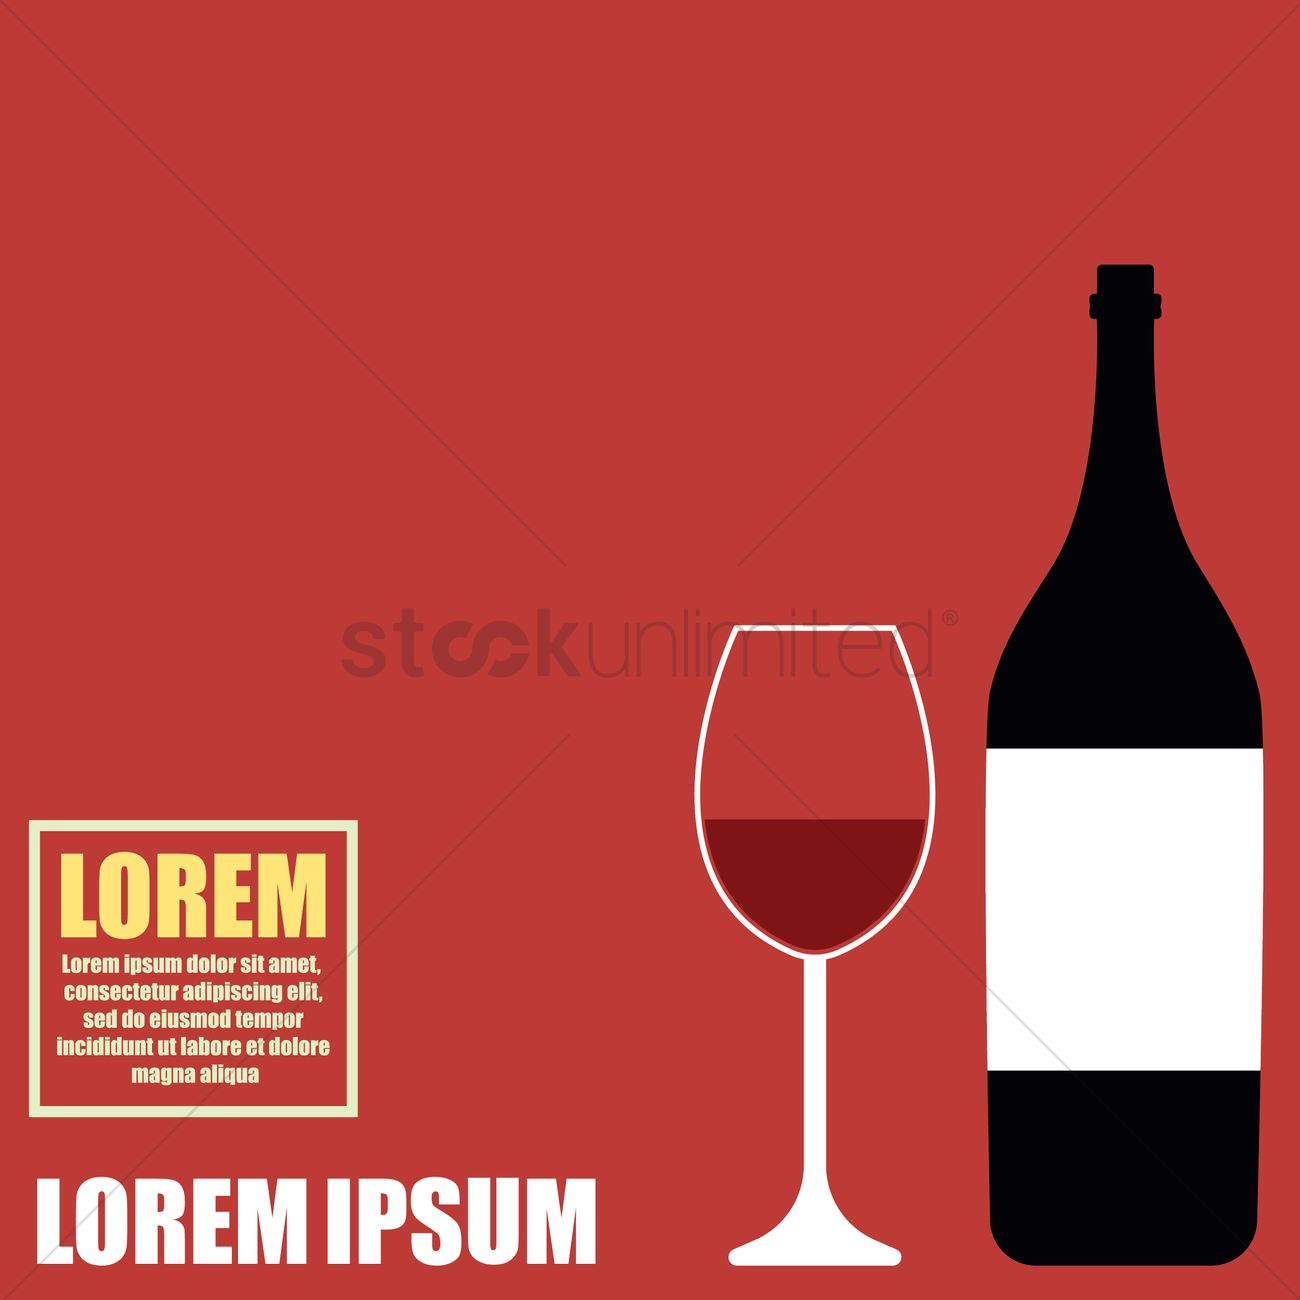 Restaurant Wallpaper Vector Graphic